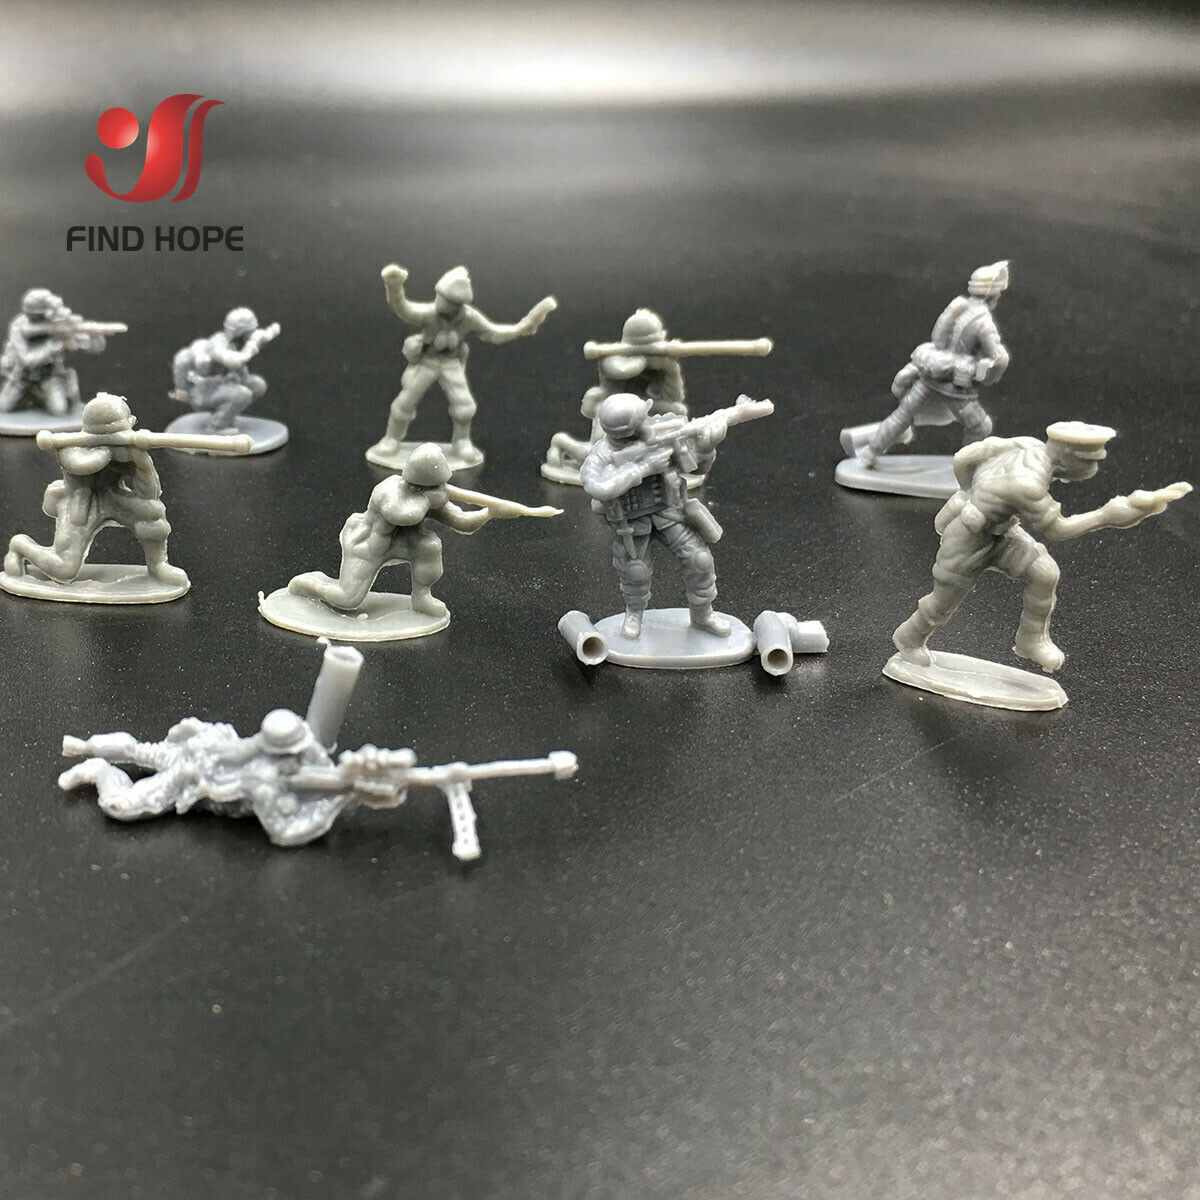 20pcs 1:72 Soldier Military Plastic Model Toy Army Action Figures Accessorie For Sandpan Game